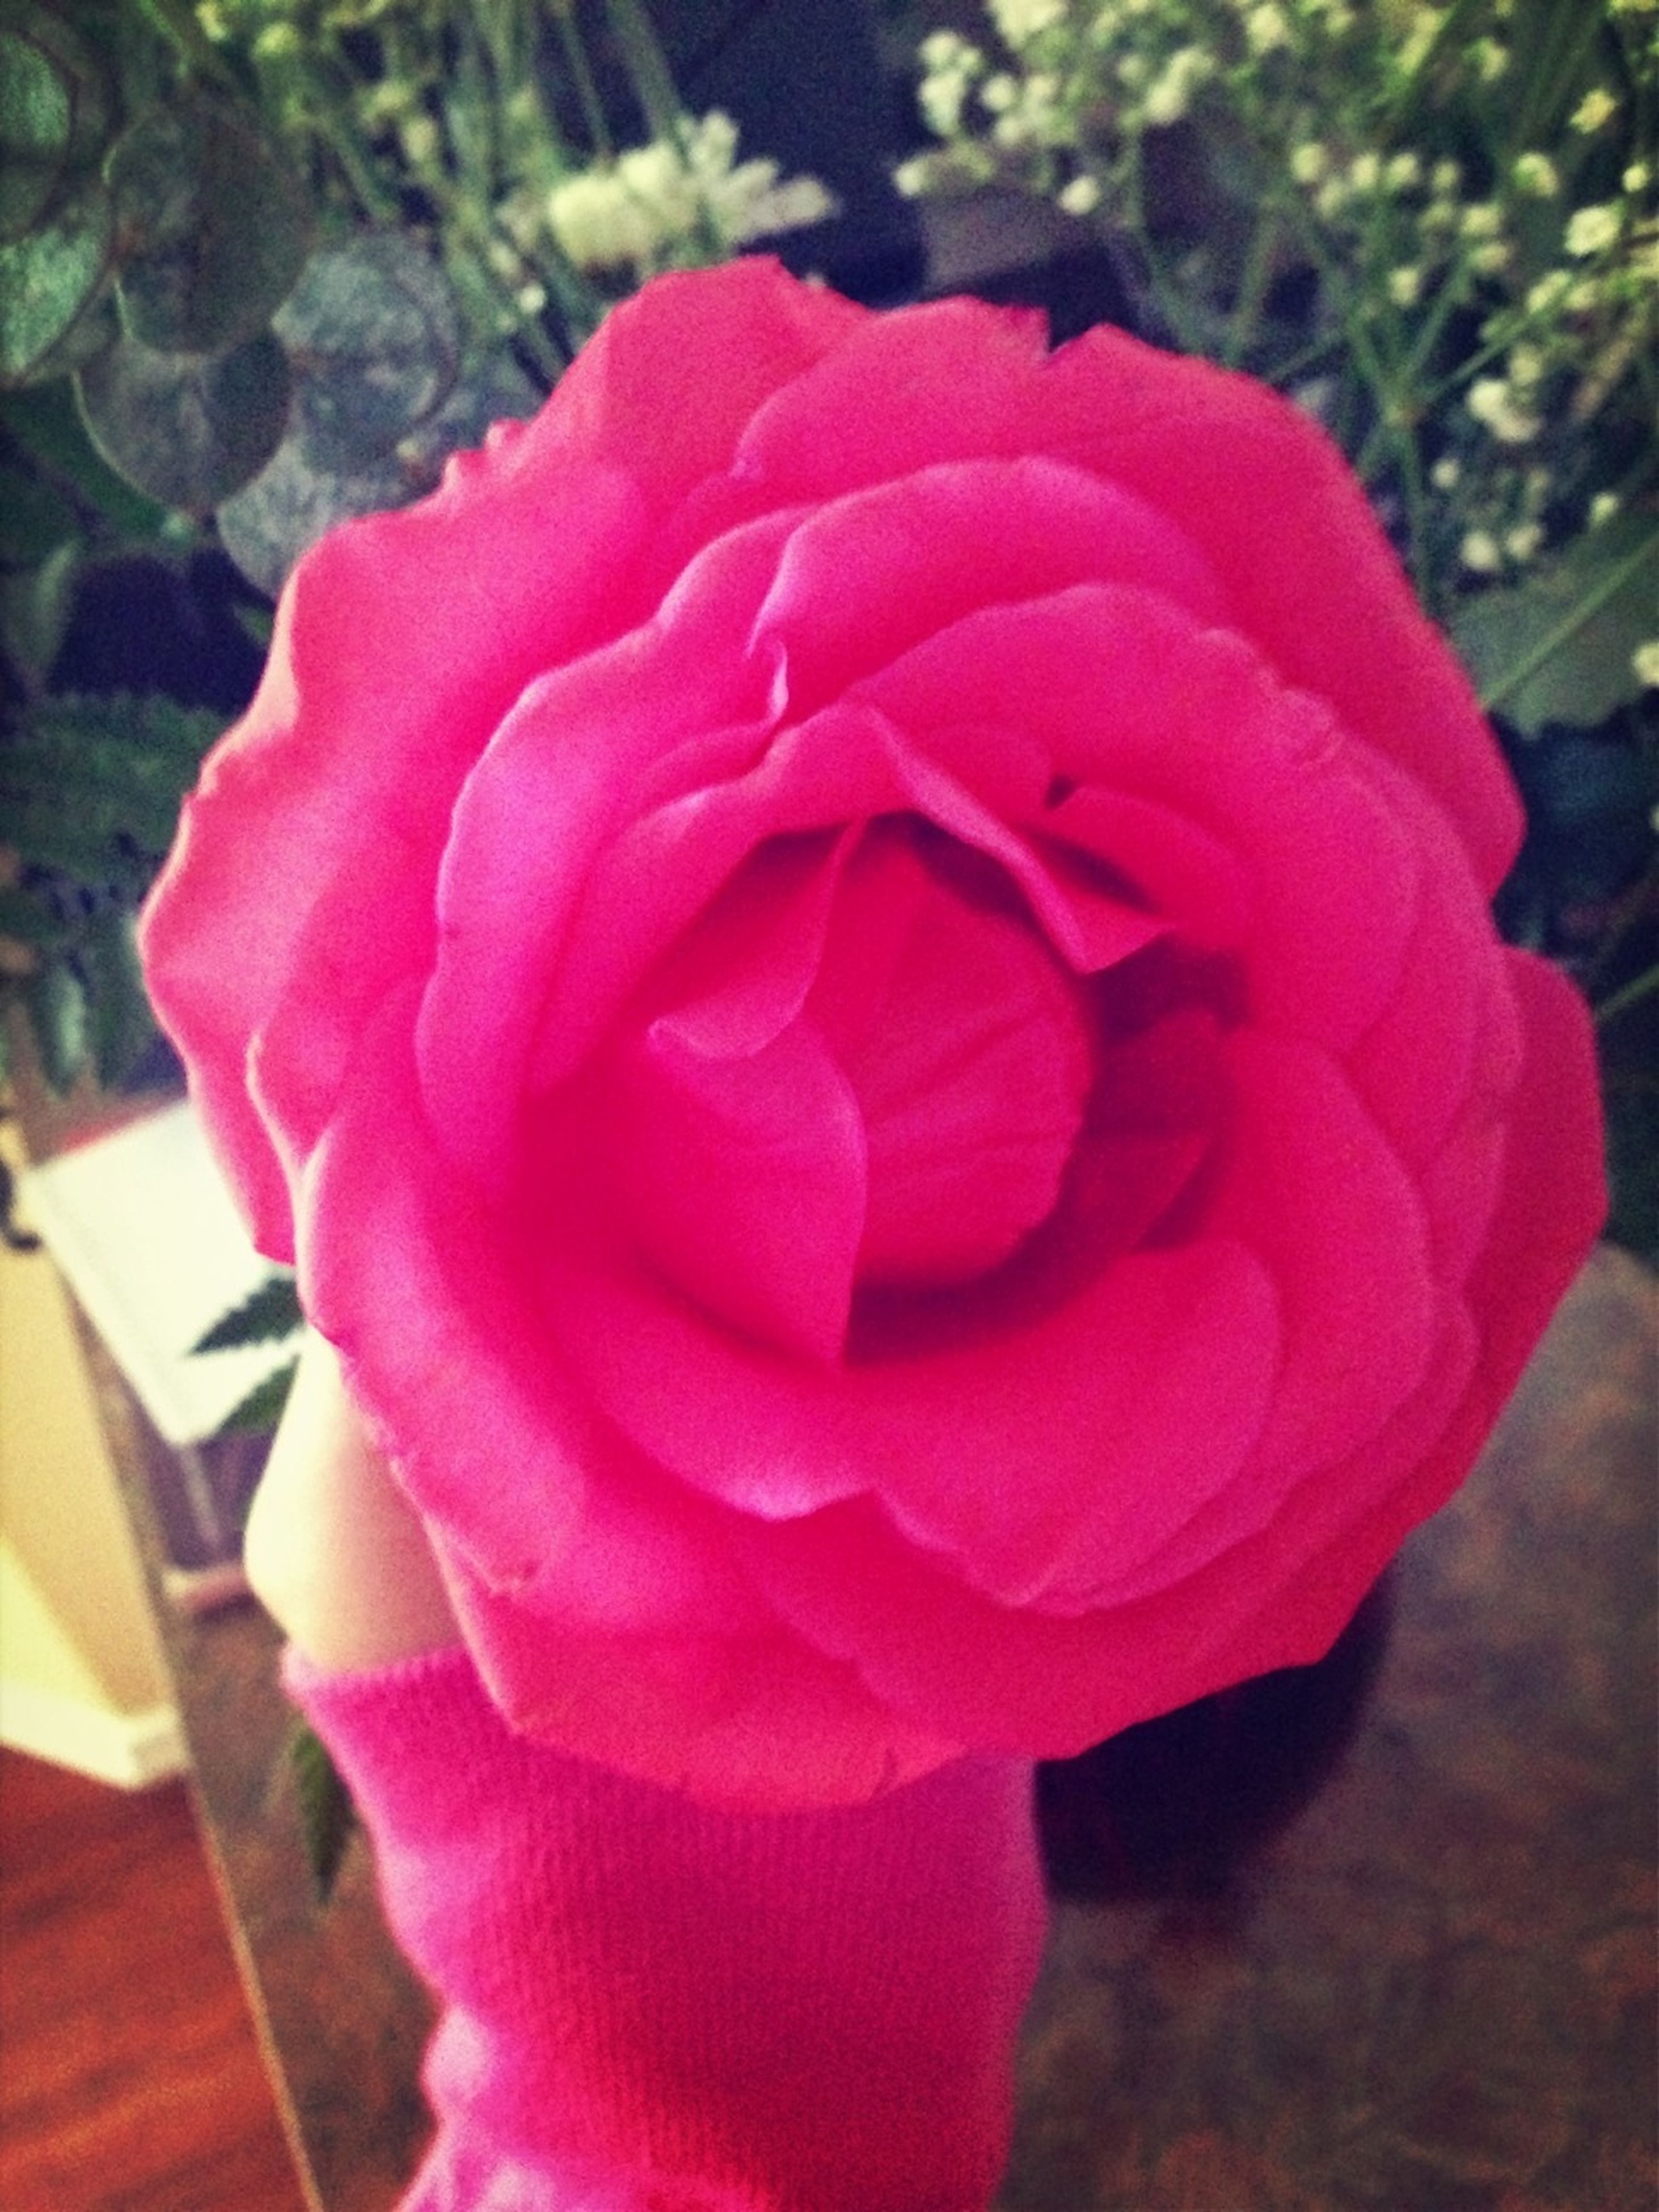 flower, petal, flower head, rose - flower, freshness, fragility, close-up, beauty in nature, pink color, single flower, growth, rose, focus on foreground, nature, blooming, red, pink, plant, in bloom, indoors